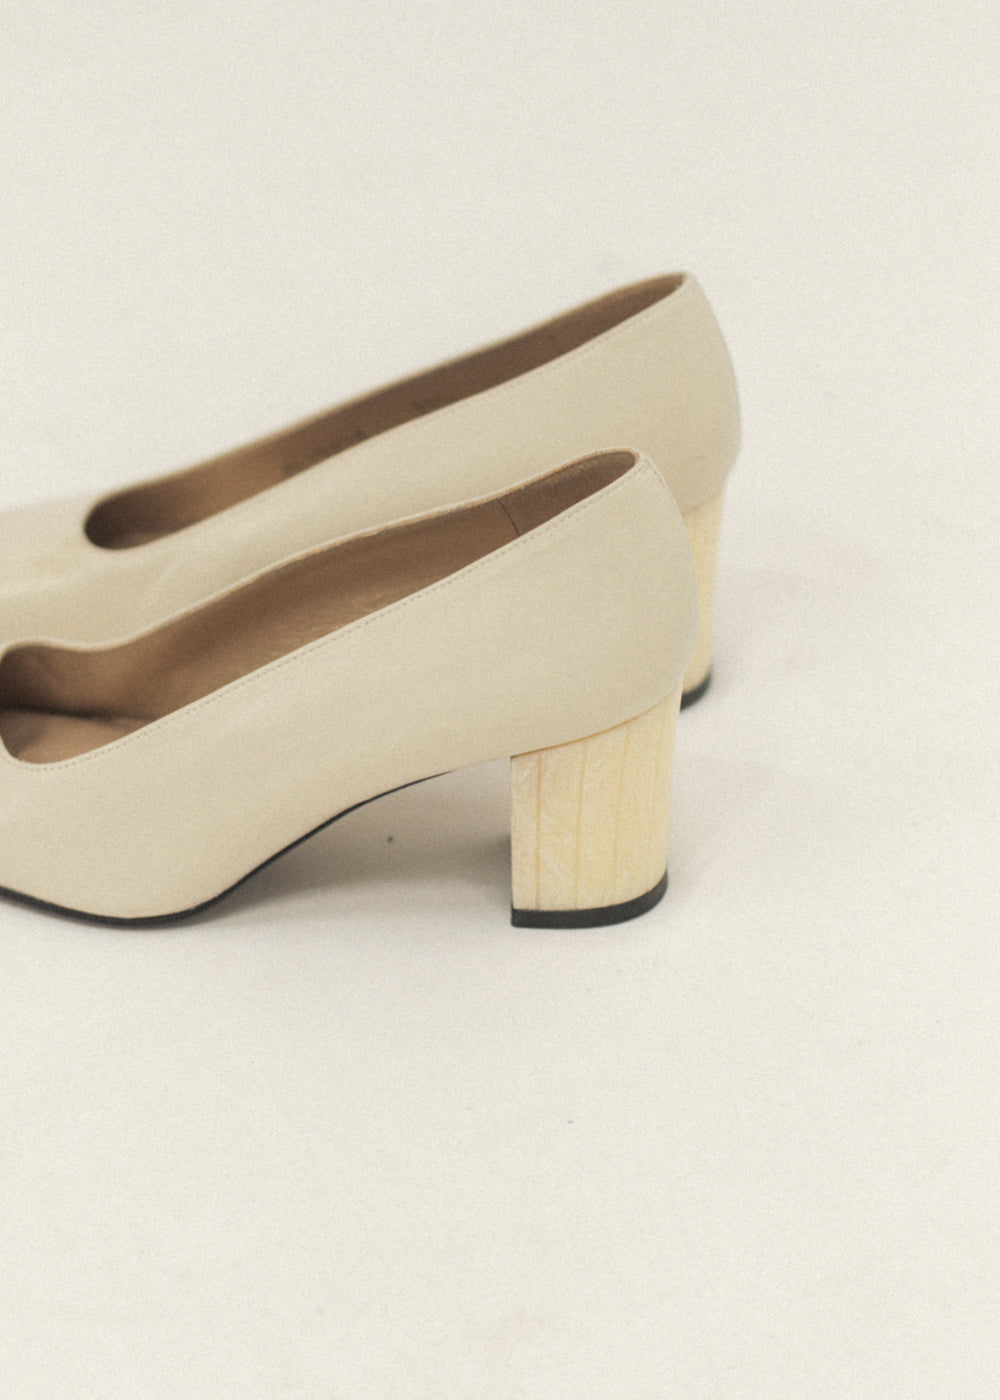 Pre-Loved Stuart Weitzman Pumps